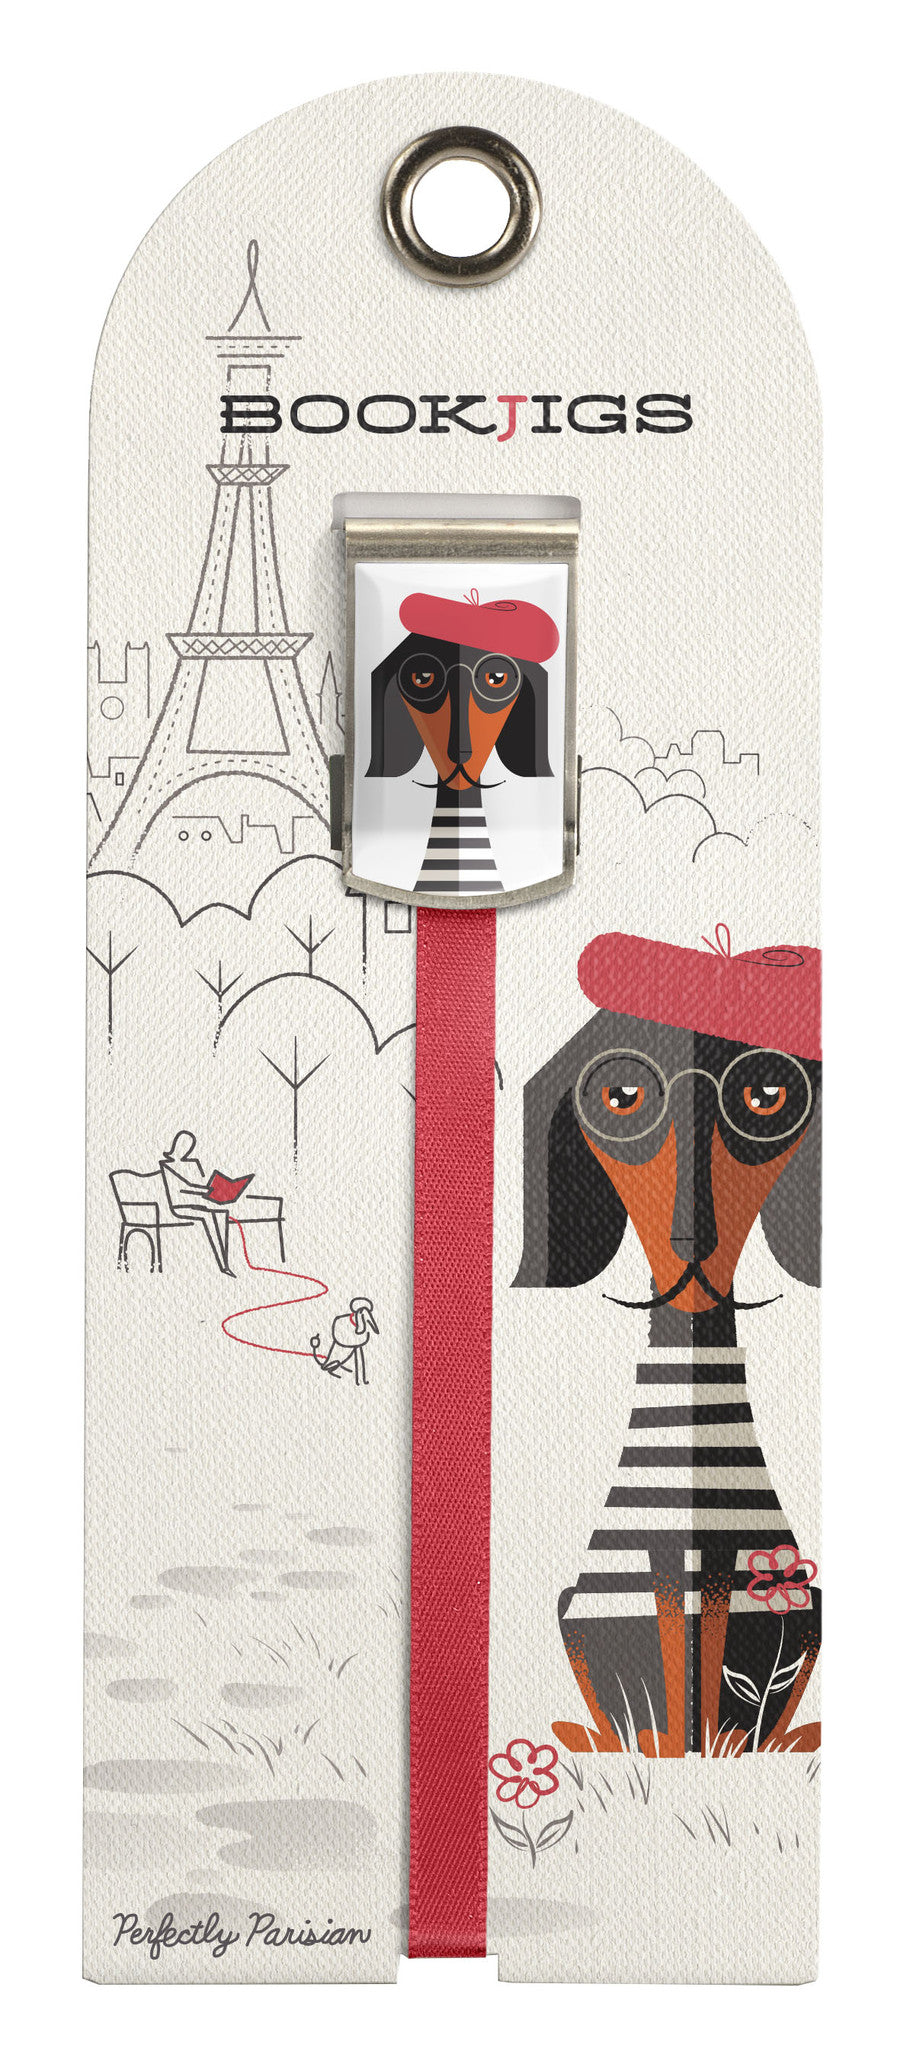 Perfectly Parisian - Bookjig